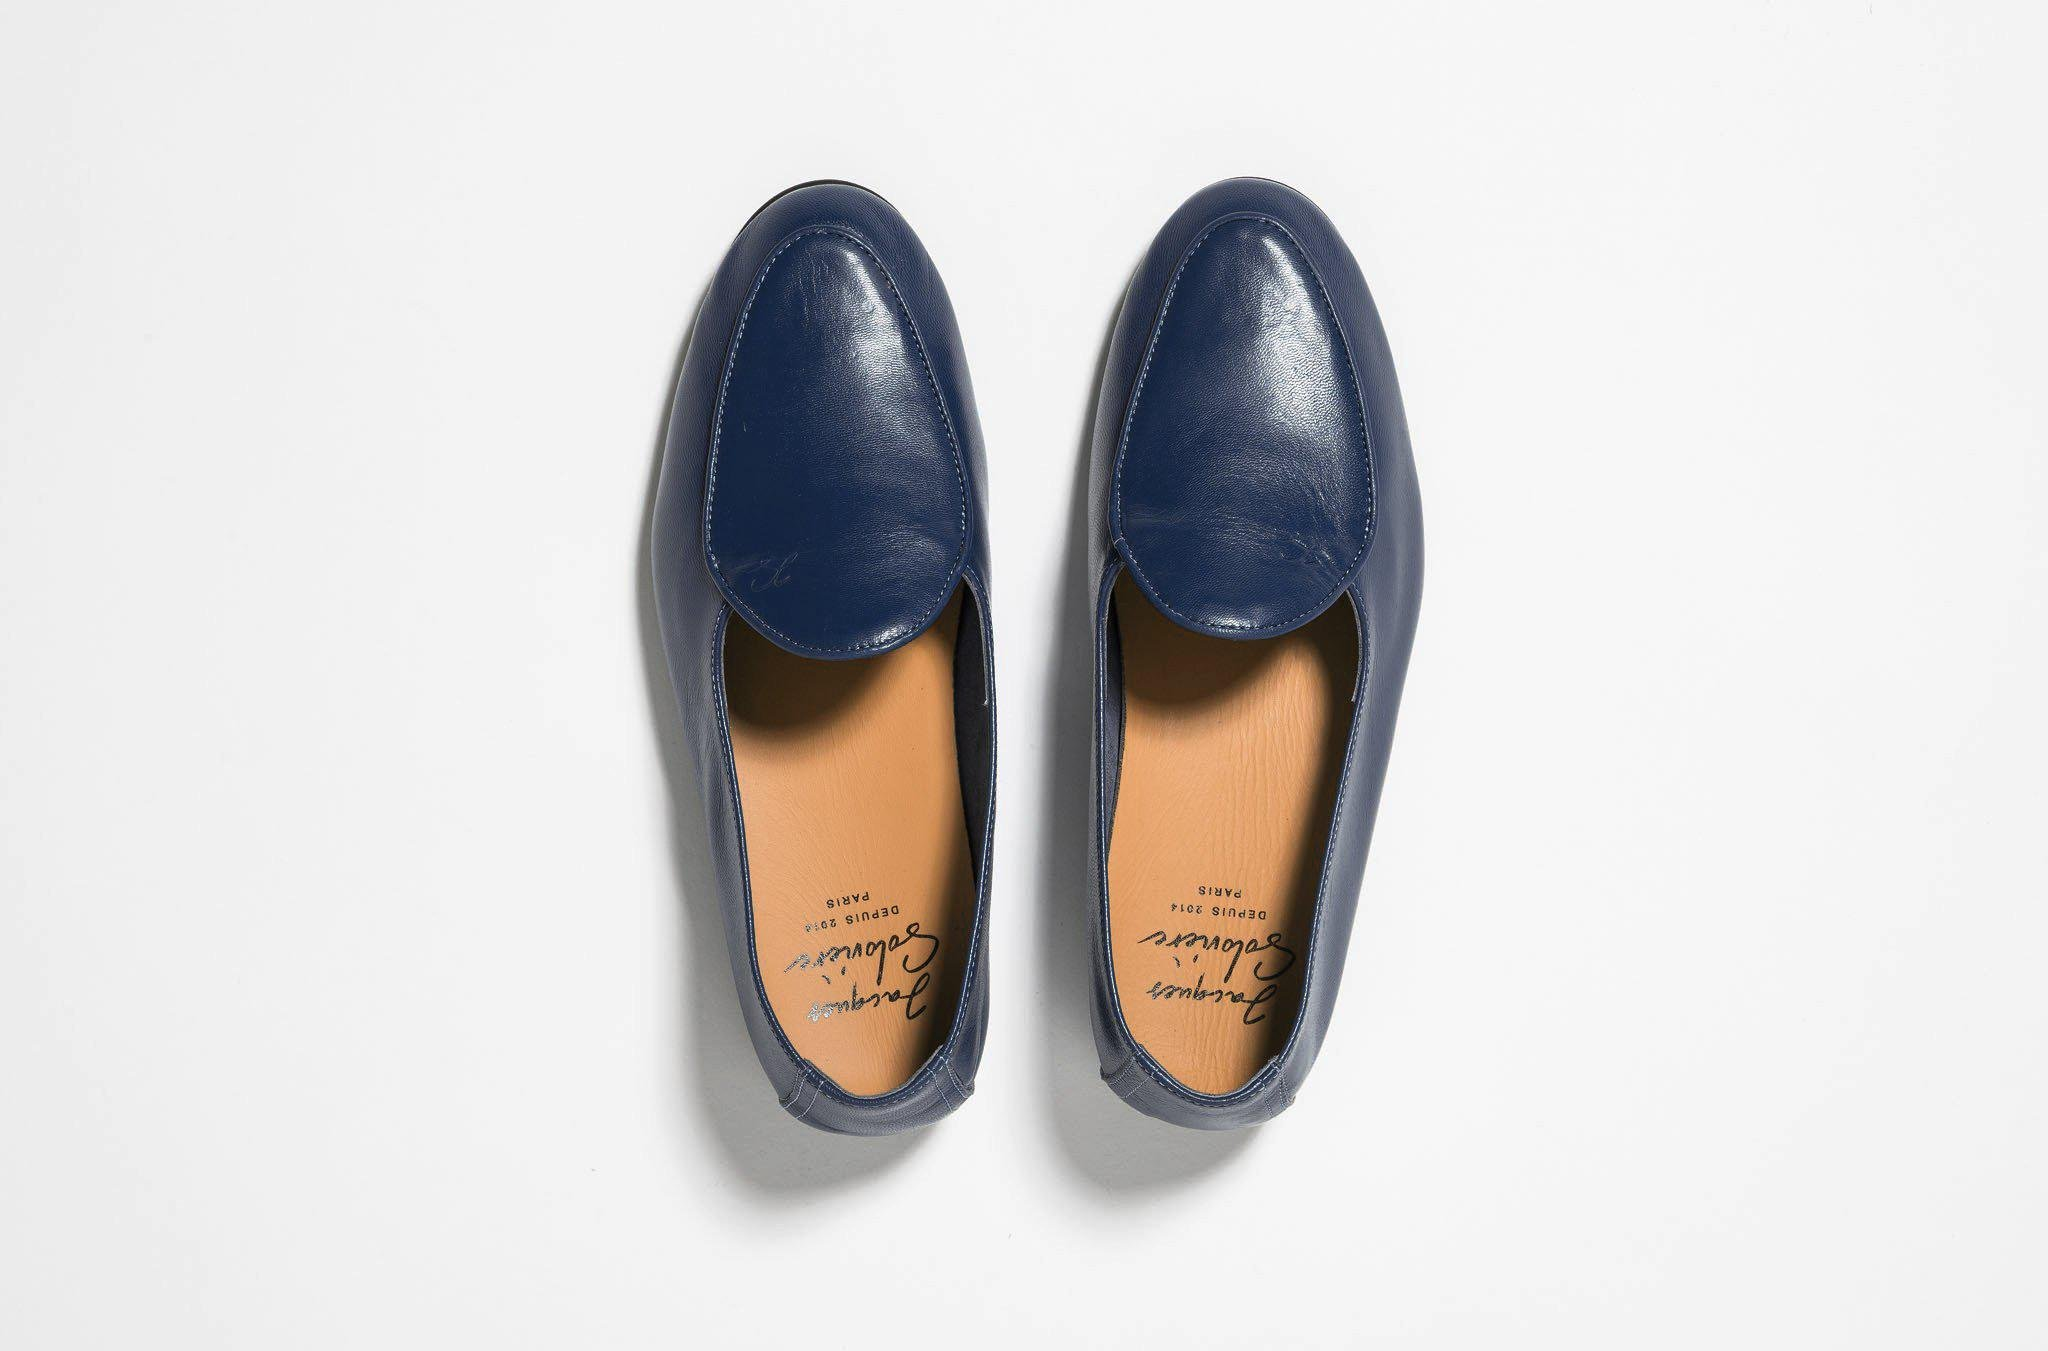 JACQUES NAVY 2